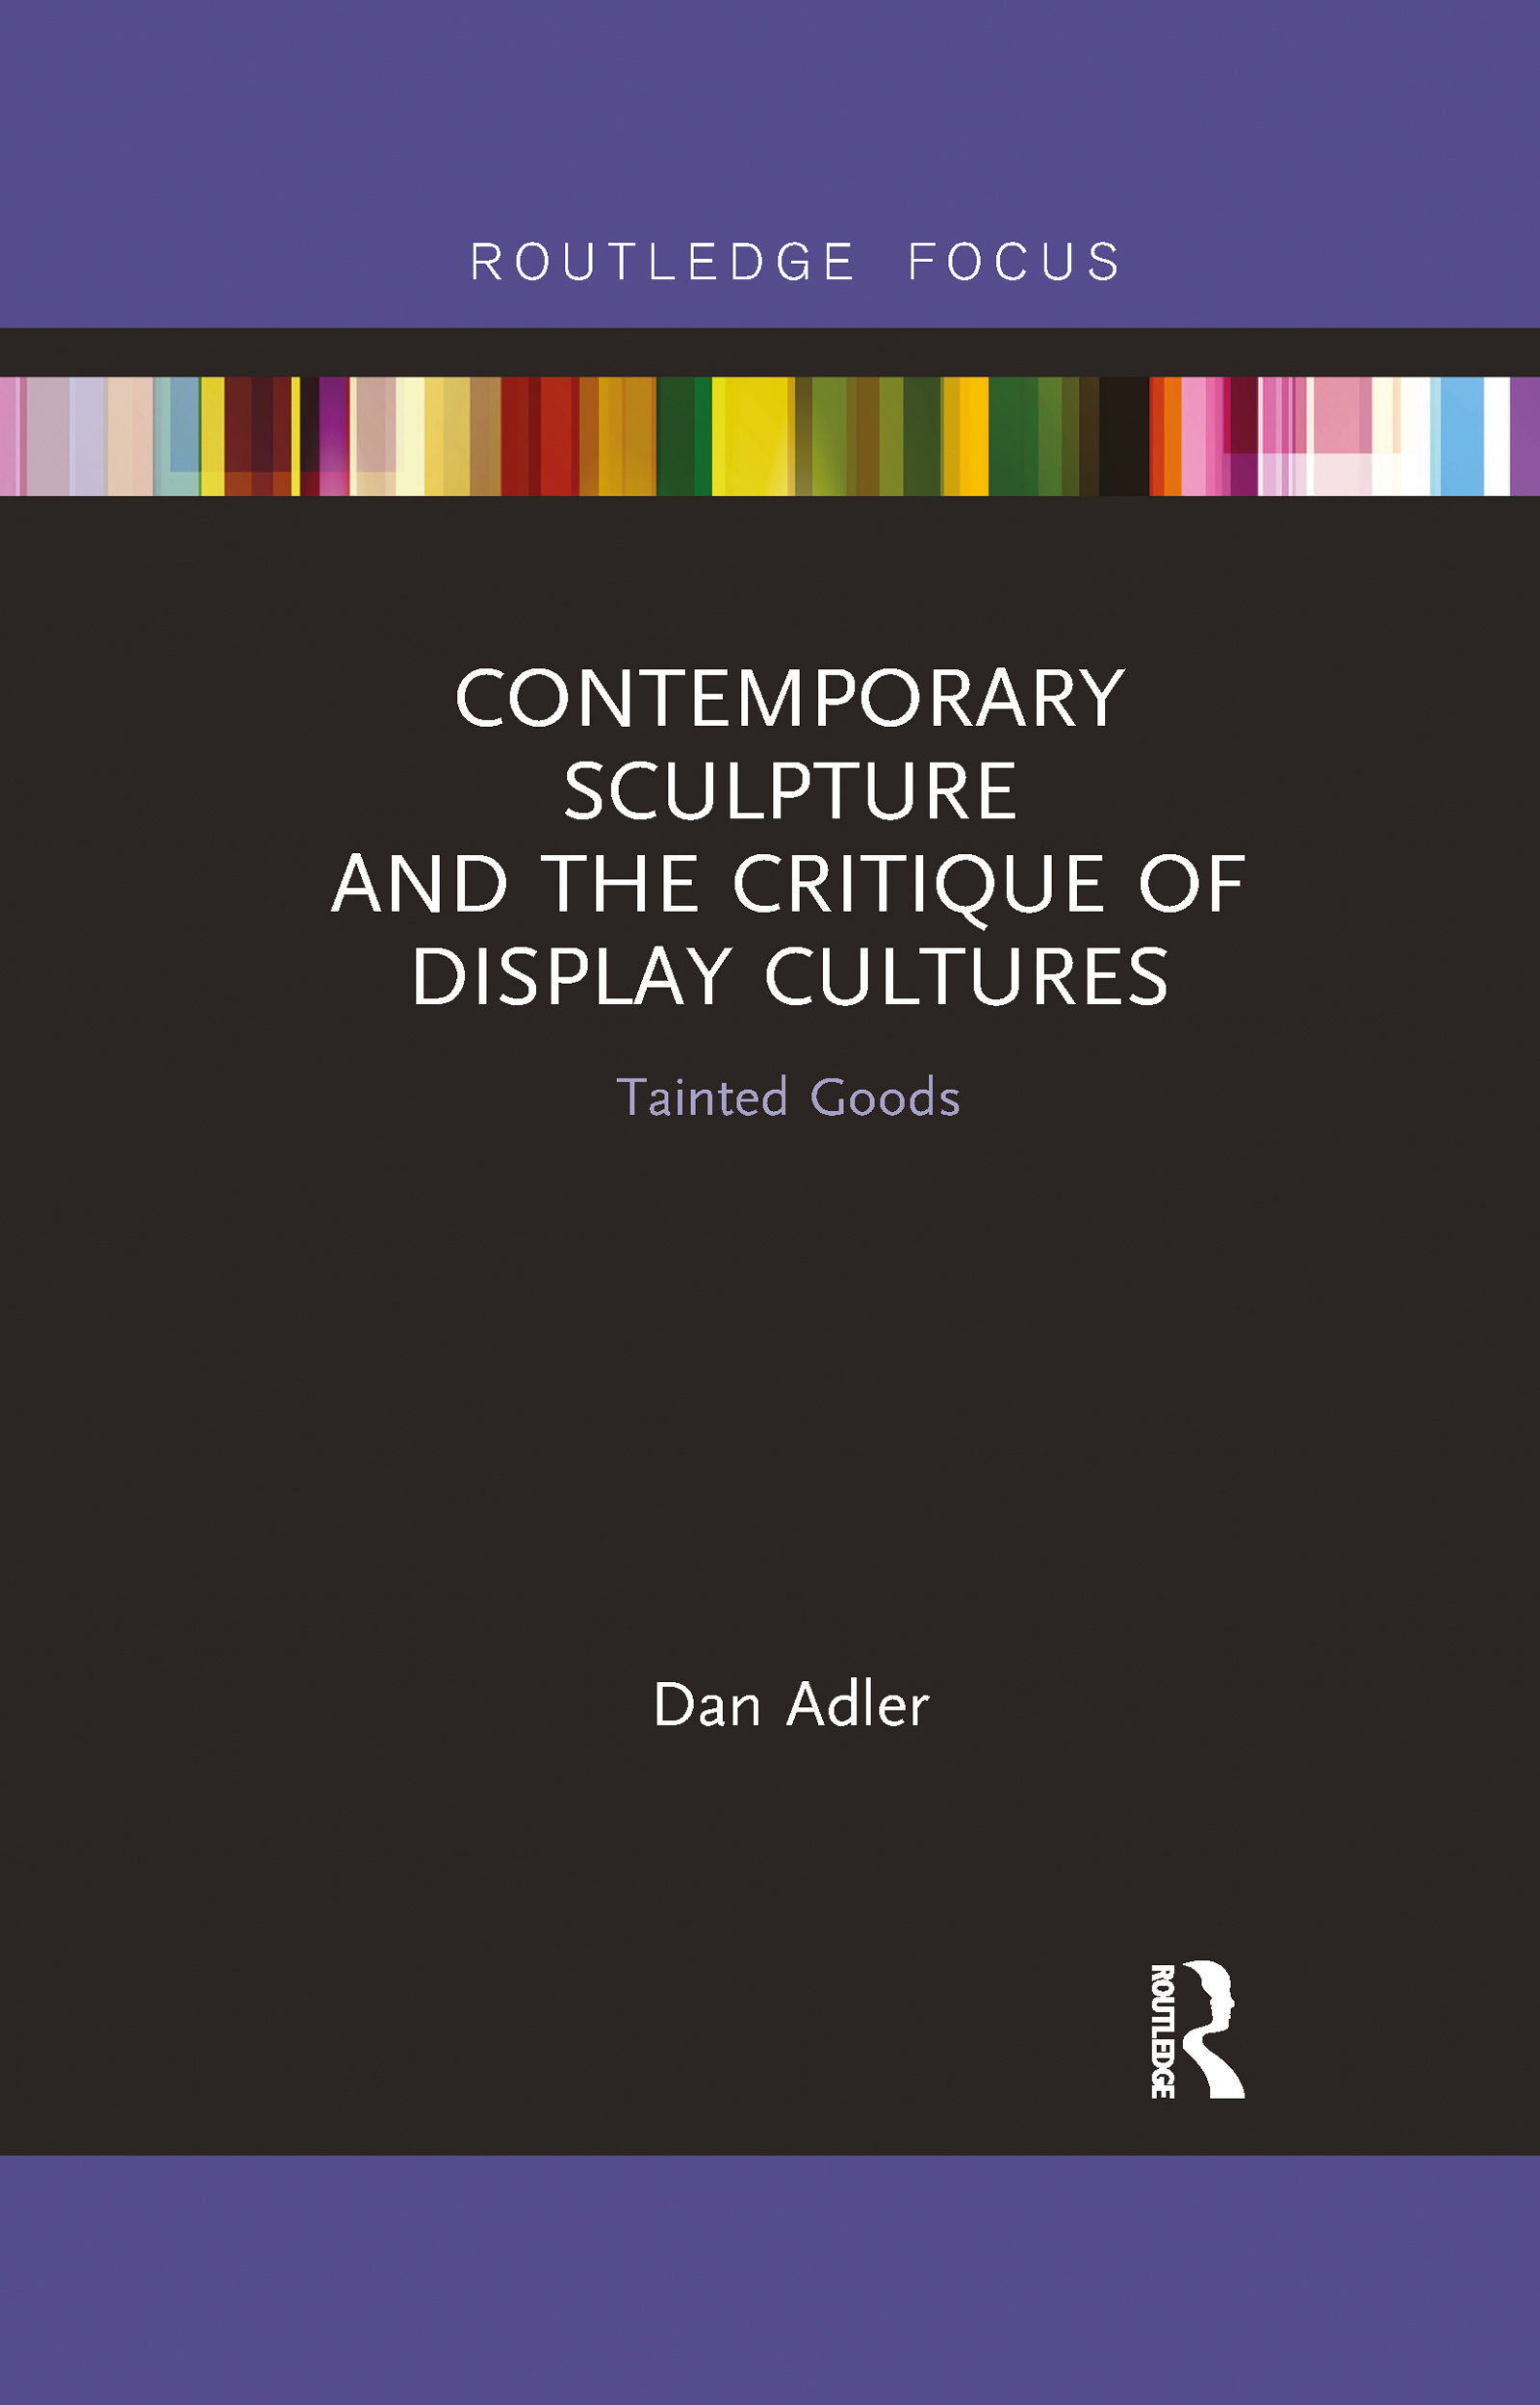 Contemporary Sculpture and the Critique of Display Cultures